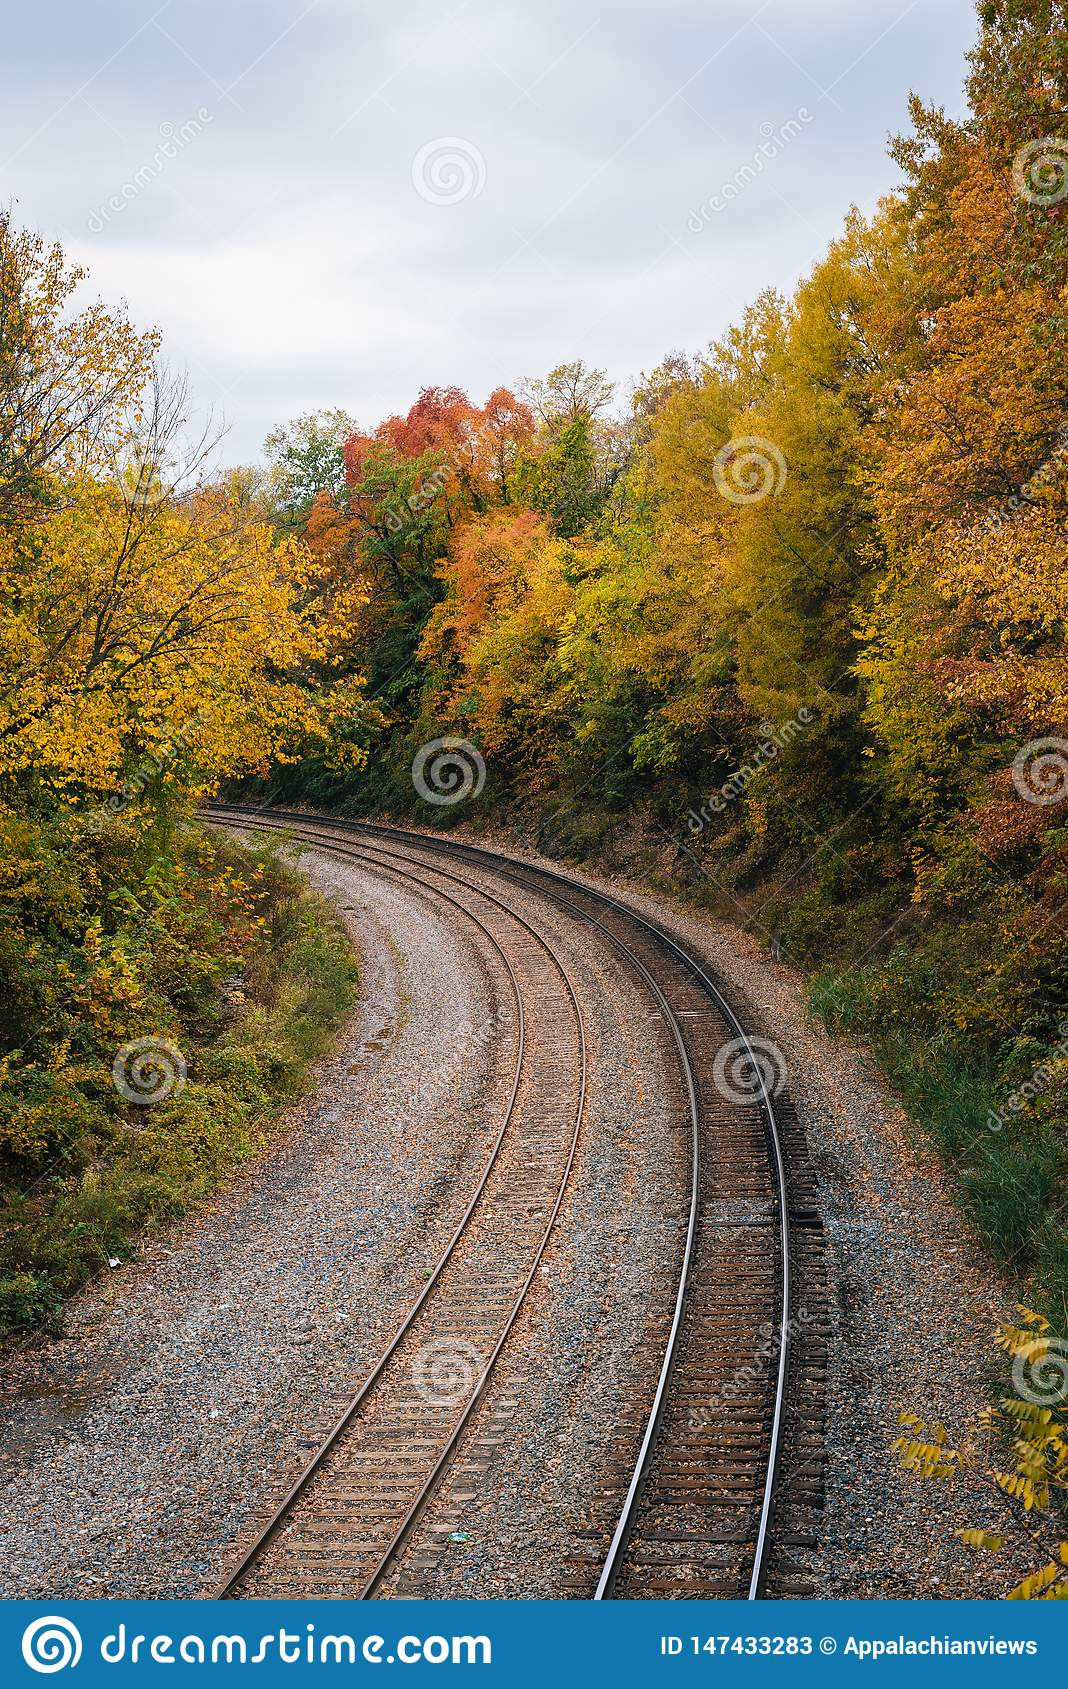 Fall color and railroad tracks in Remington, Baltimore, Maryland